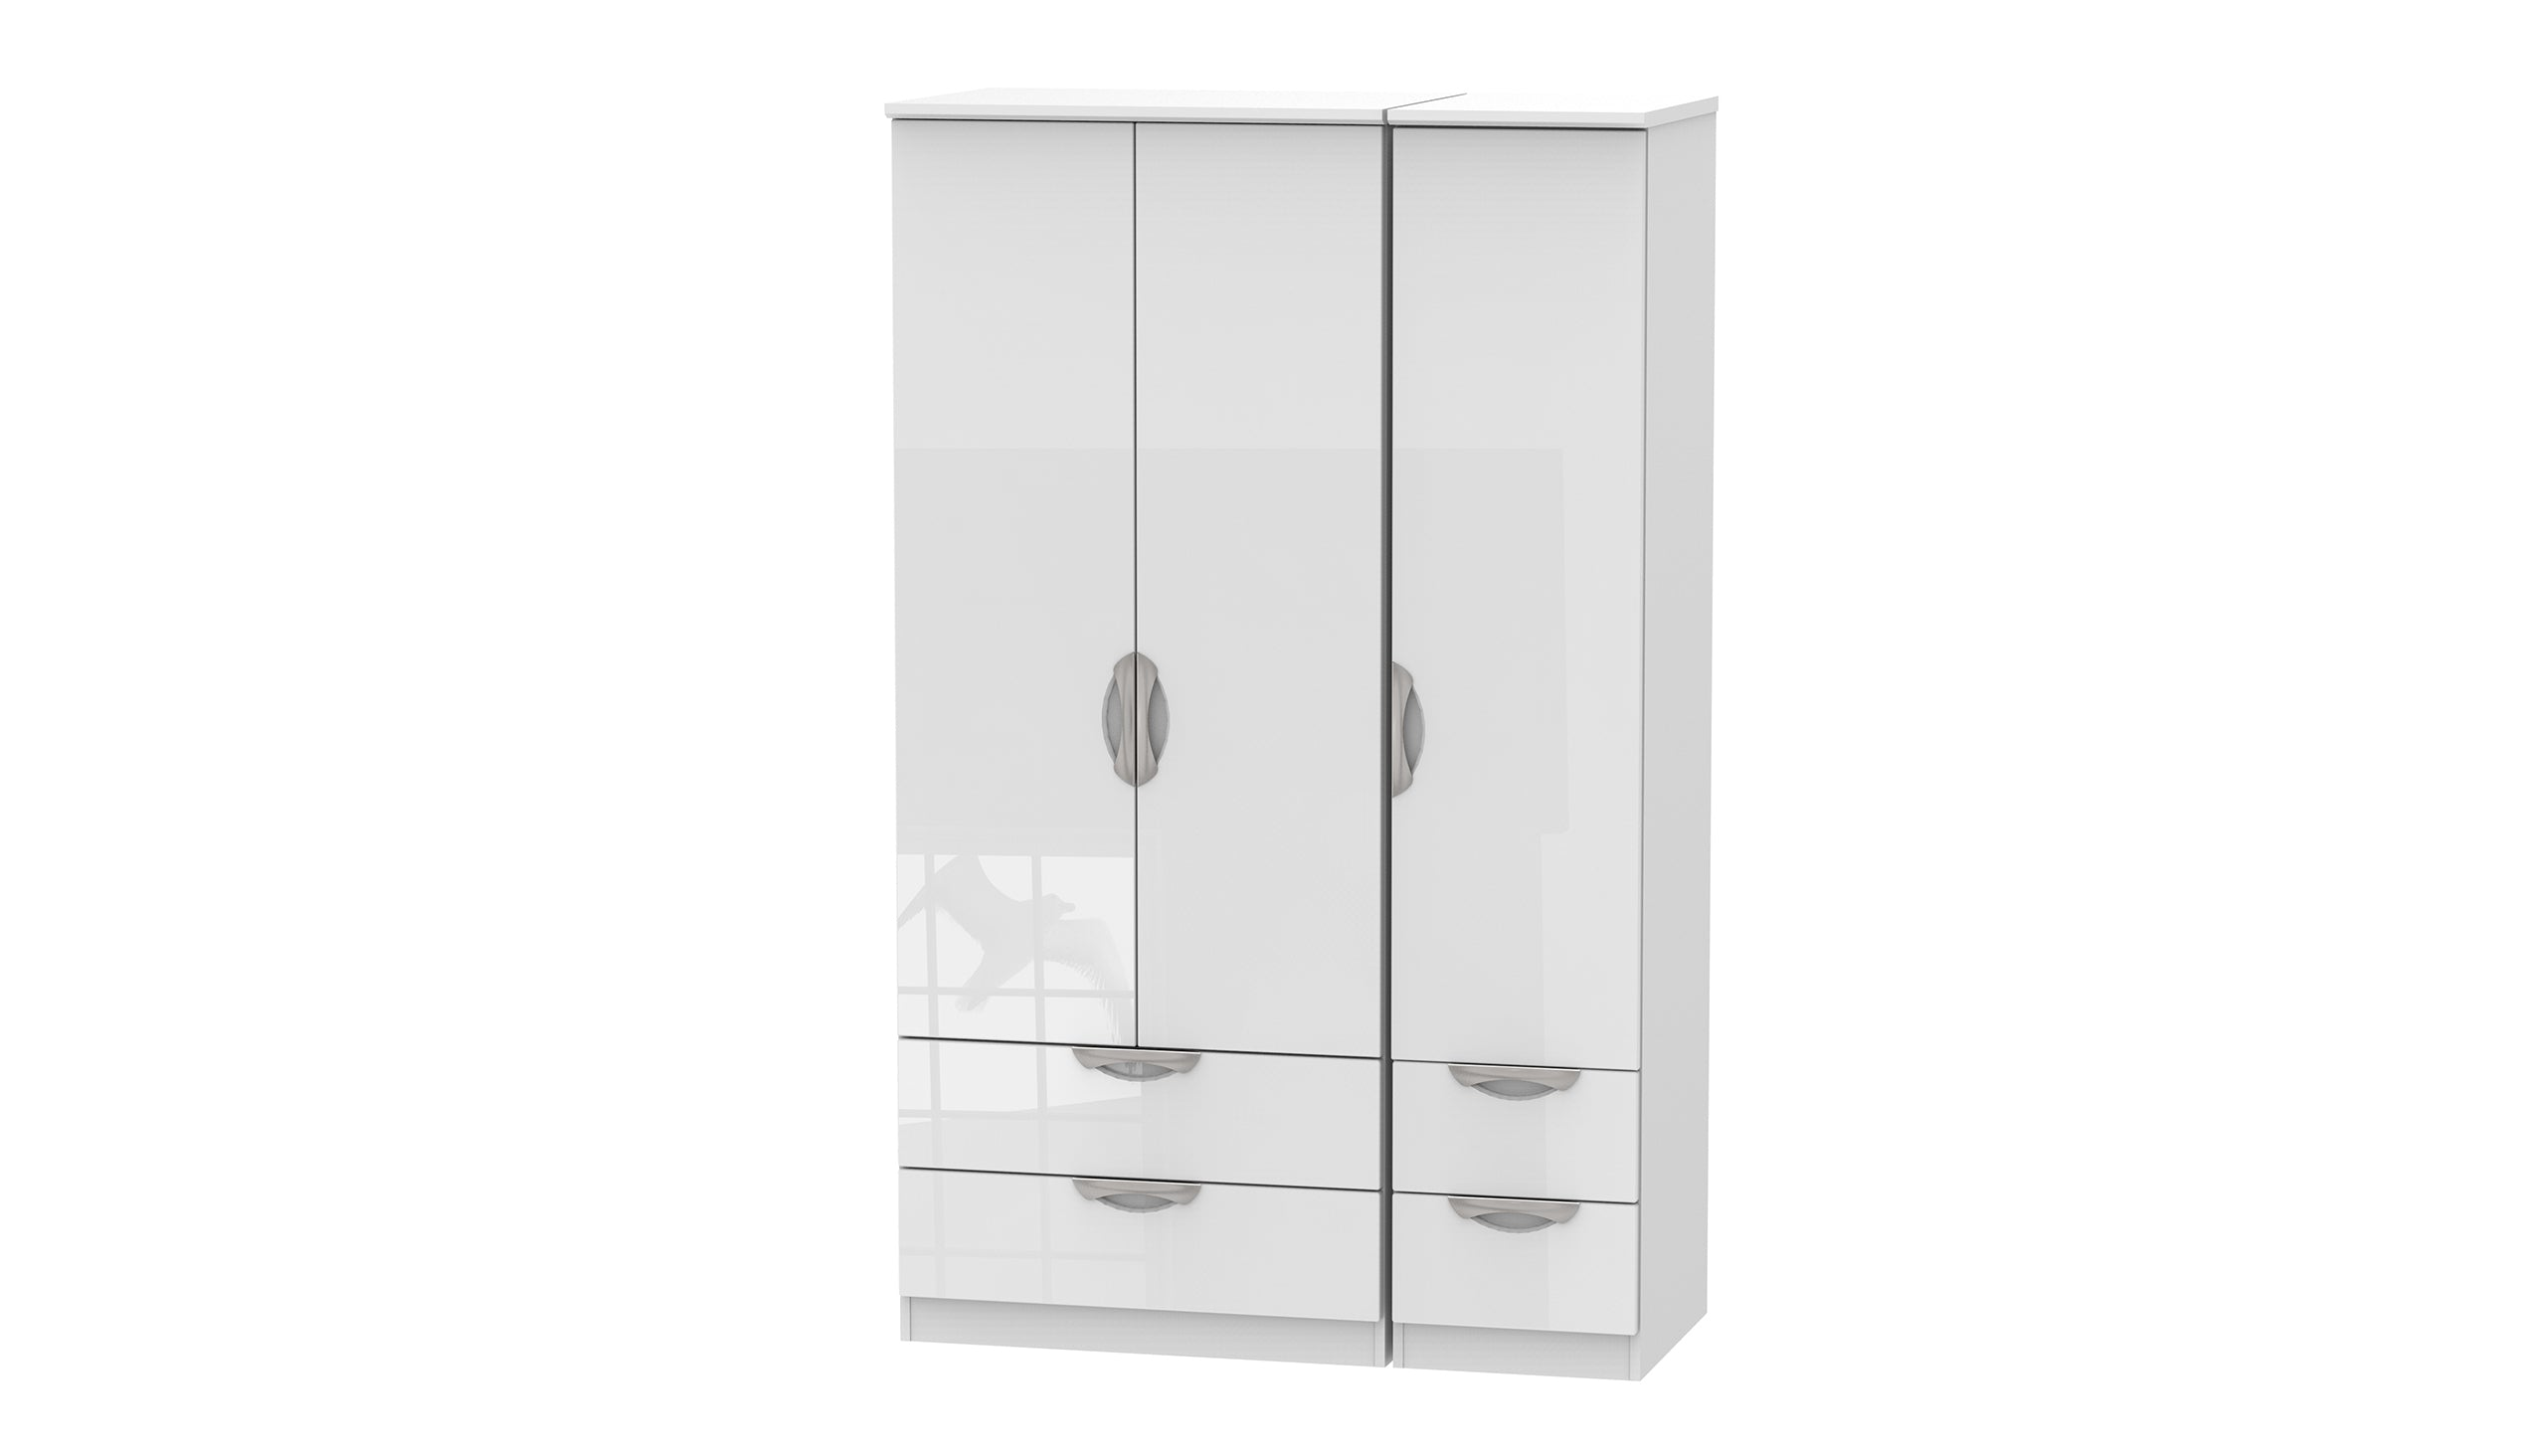 Moda 3 Door 4 Drawer Wardrobe - AHF Furniture & Carpets